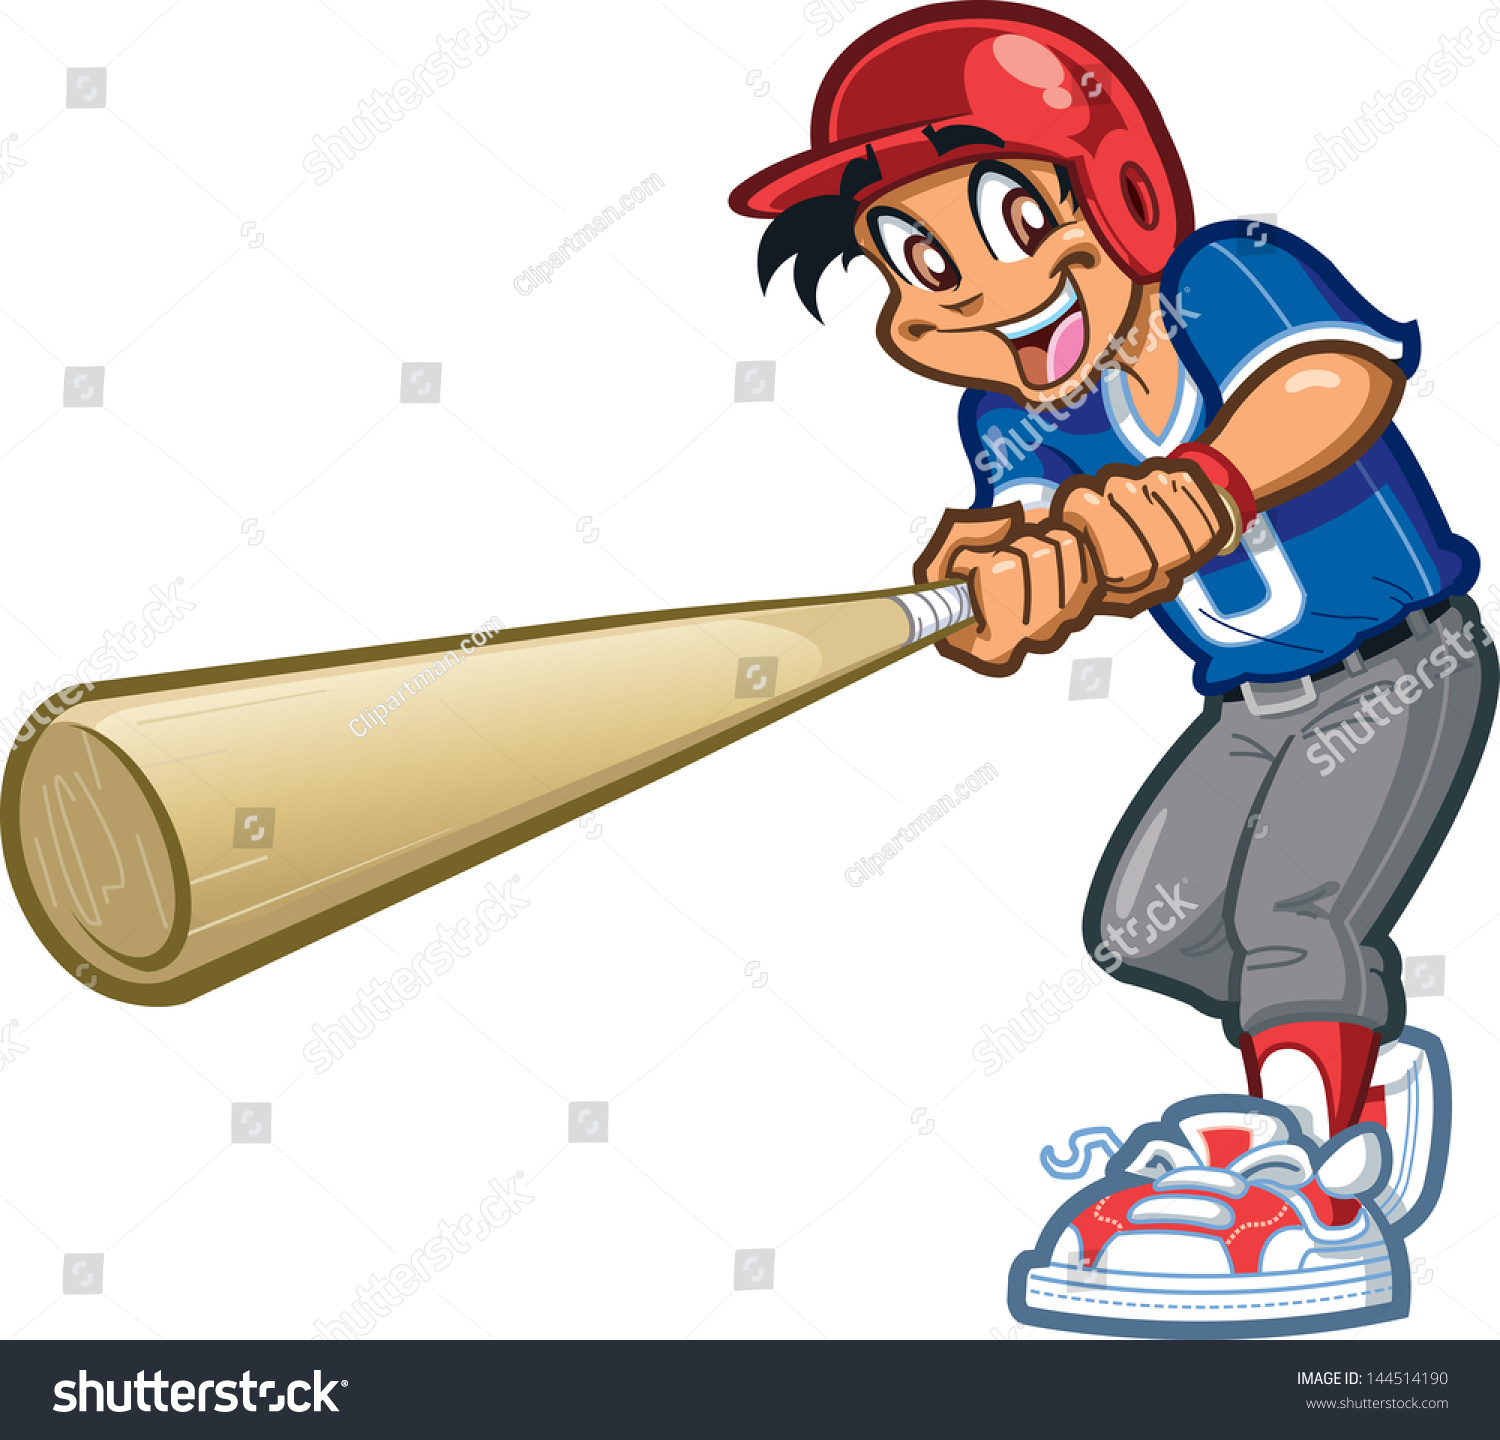 hight resolution of happy smiling baseball softball little league player swinging a giant bat with batter s helmet